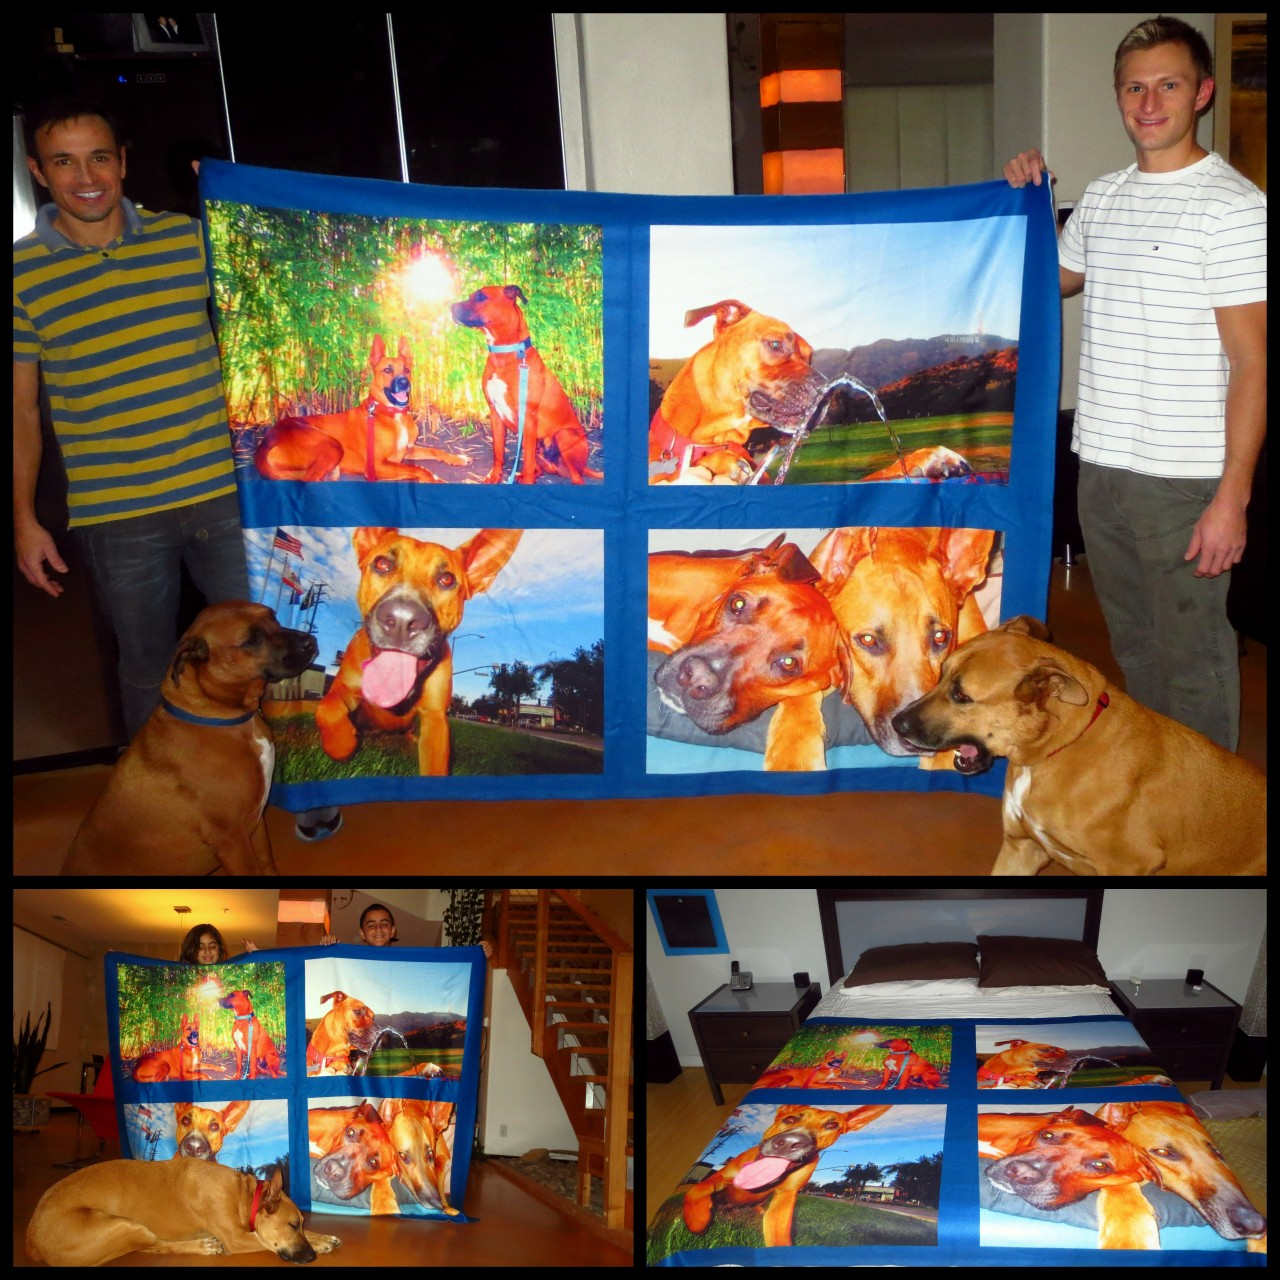 The Chazz & Rio blanket I made for Claudio and Ryan for Christmas, was a hit!